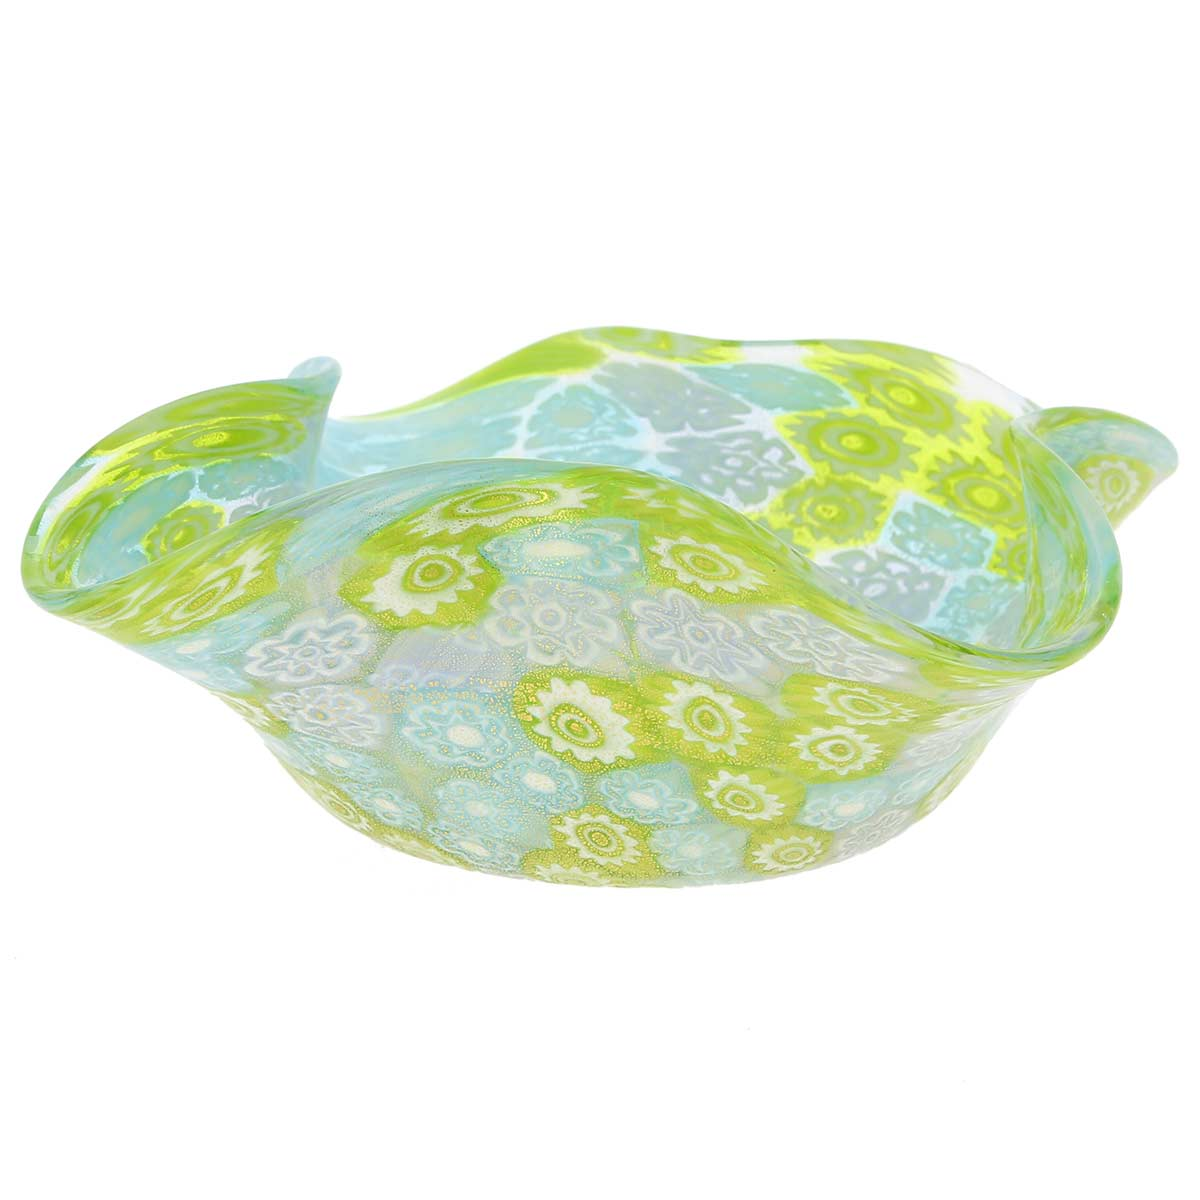 Murano Millefiori Decorative Bowl - Aqua Green